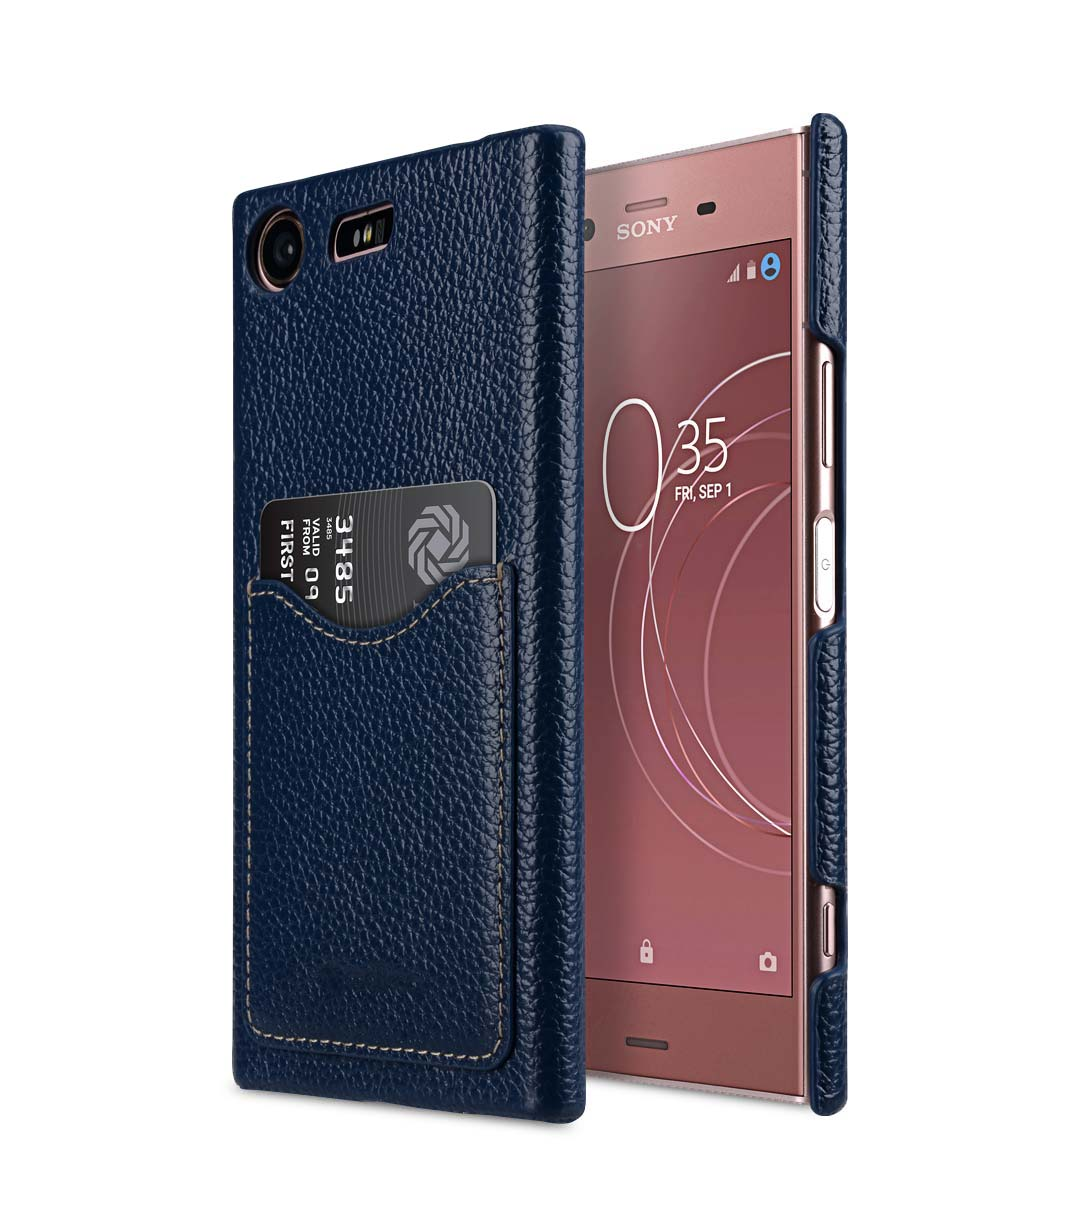 premium leather card slot cover case for sony xperia xz1. Black Bedroom Furniture Sets. Home Design Ideas